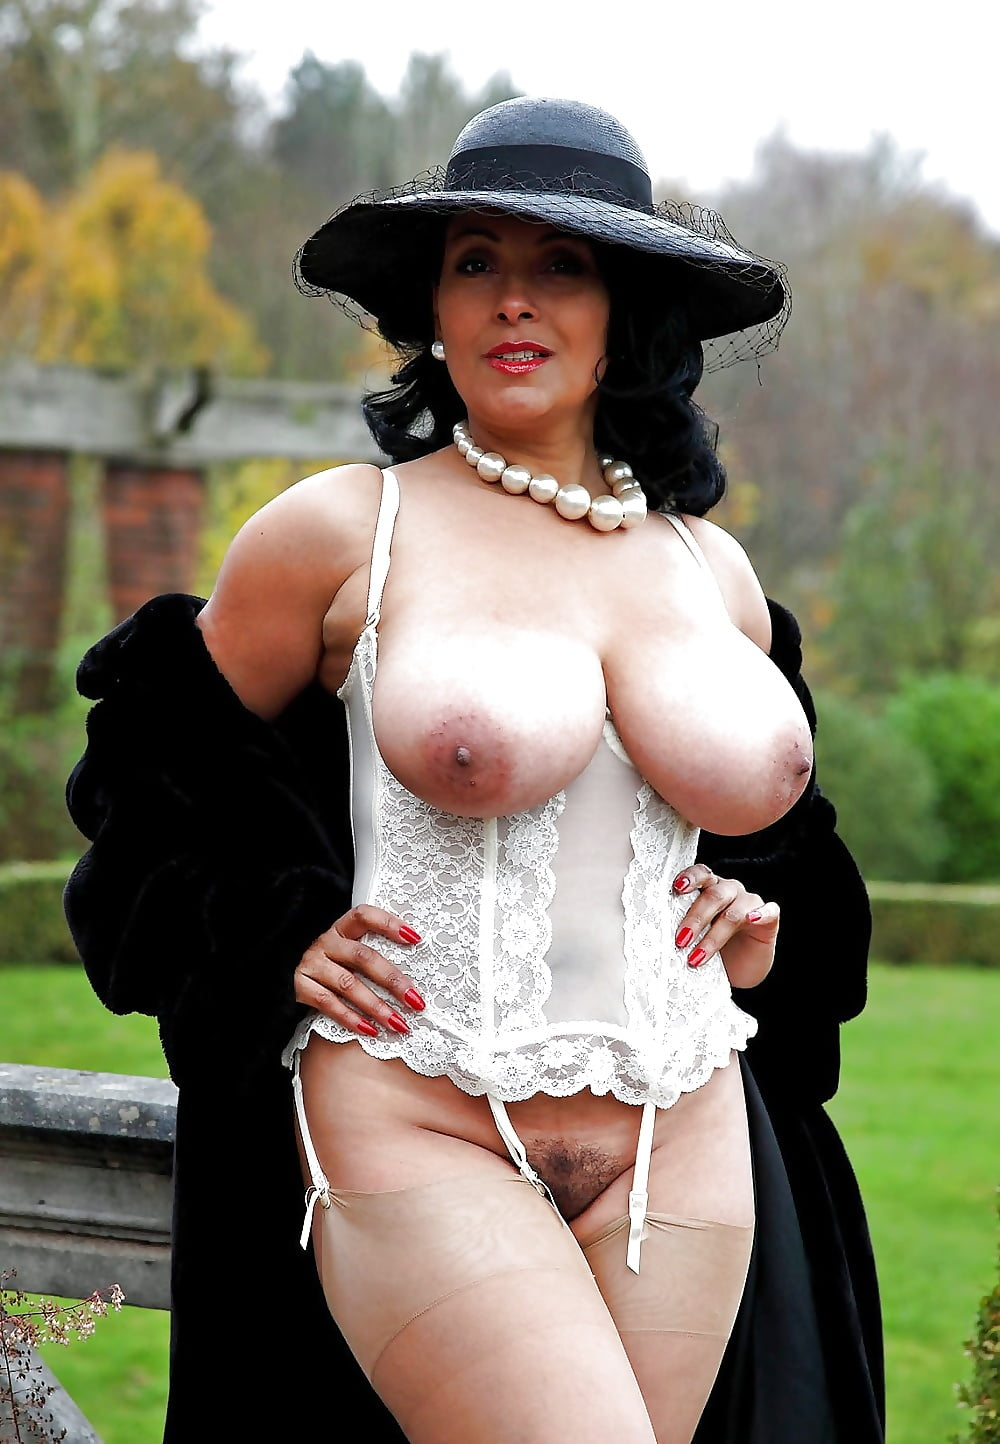 Mature ladies great tits surrey, indian girls naked squirting